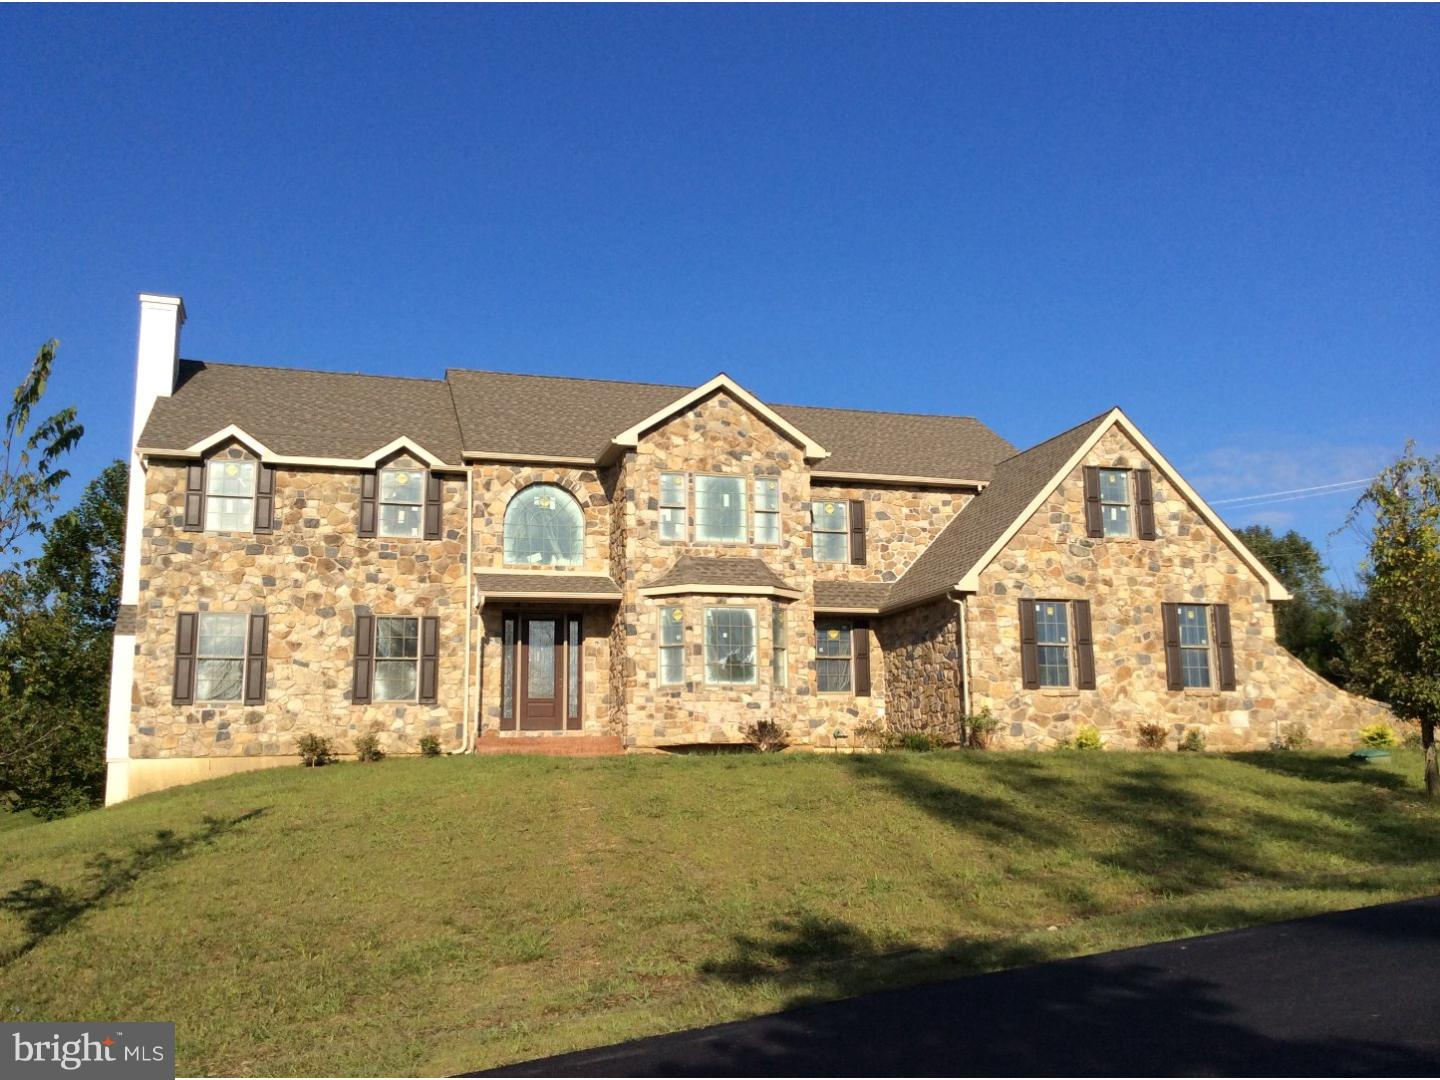 Lot 1 COLONIAL DRIVE, WEST CHESTER, PA 19382